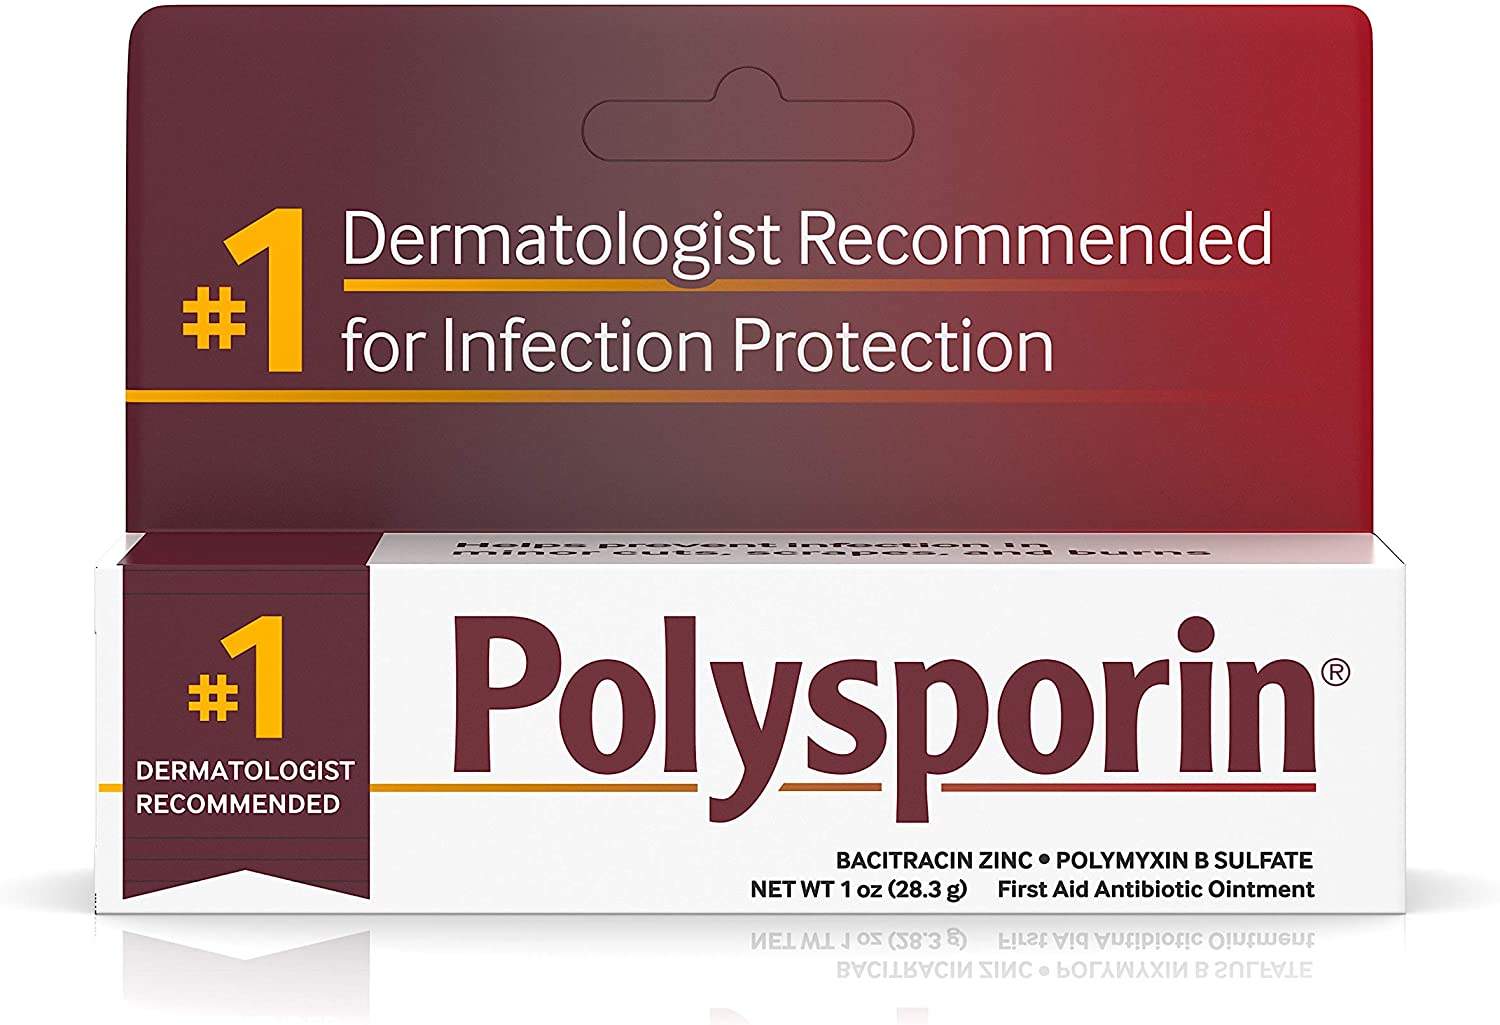 Polysporin First Aid Topical Antibiotic Ointment with Bacitracin Zinc & Polymyxin B Sulfate, For Infection Protection & Wound Care Without Neomycin, Travel Size, 1.0 oz